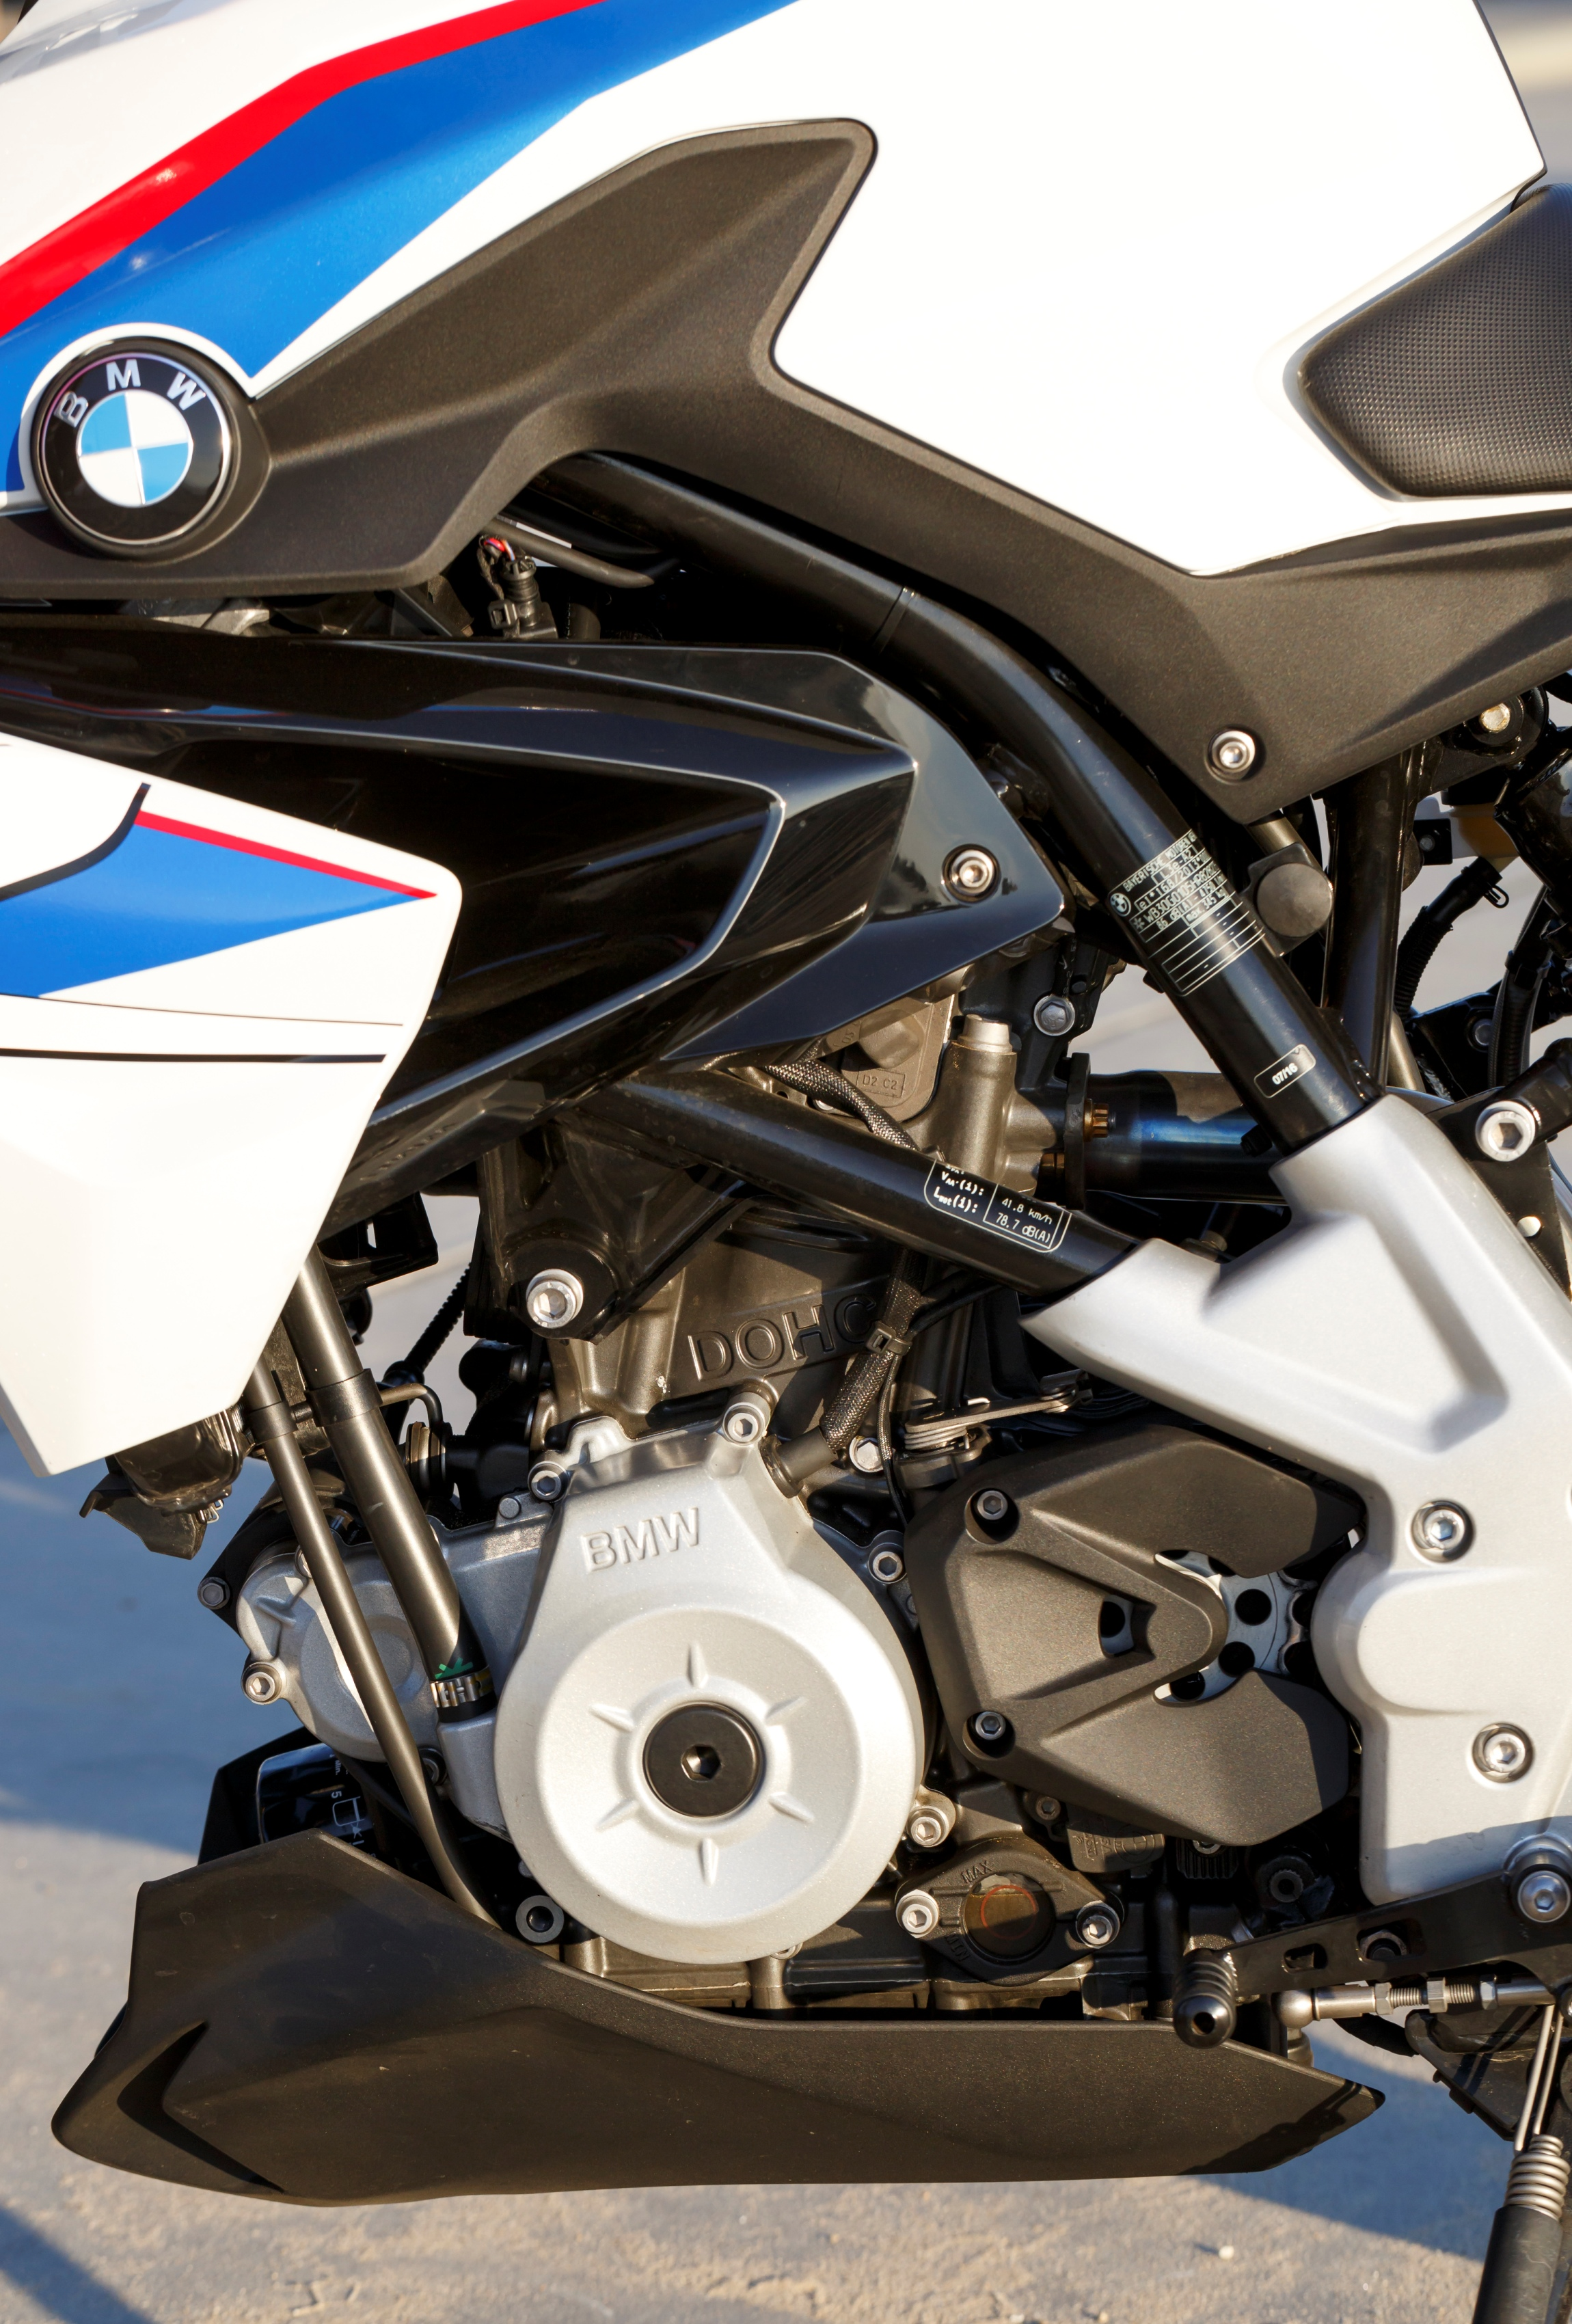 BMW G 310 R engine